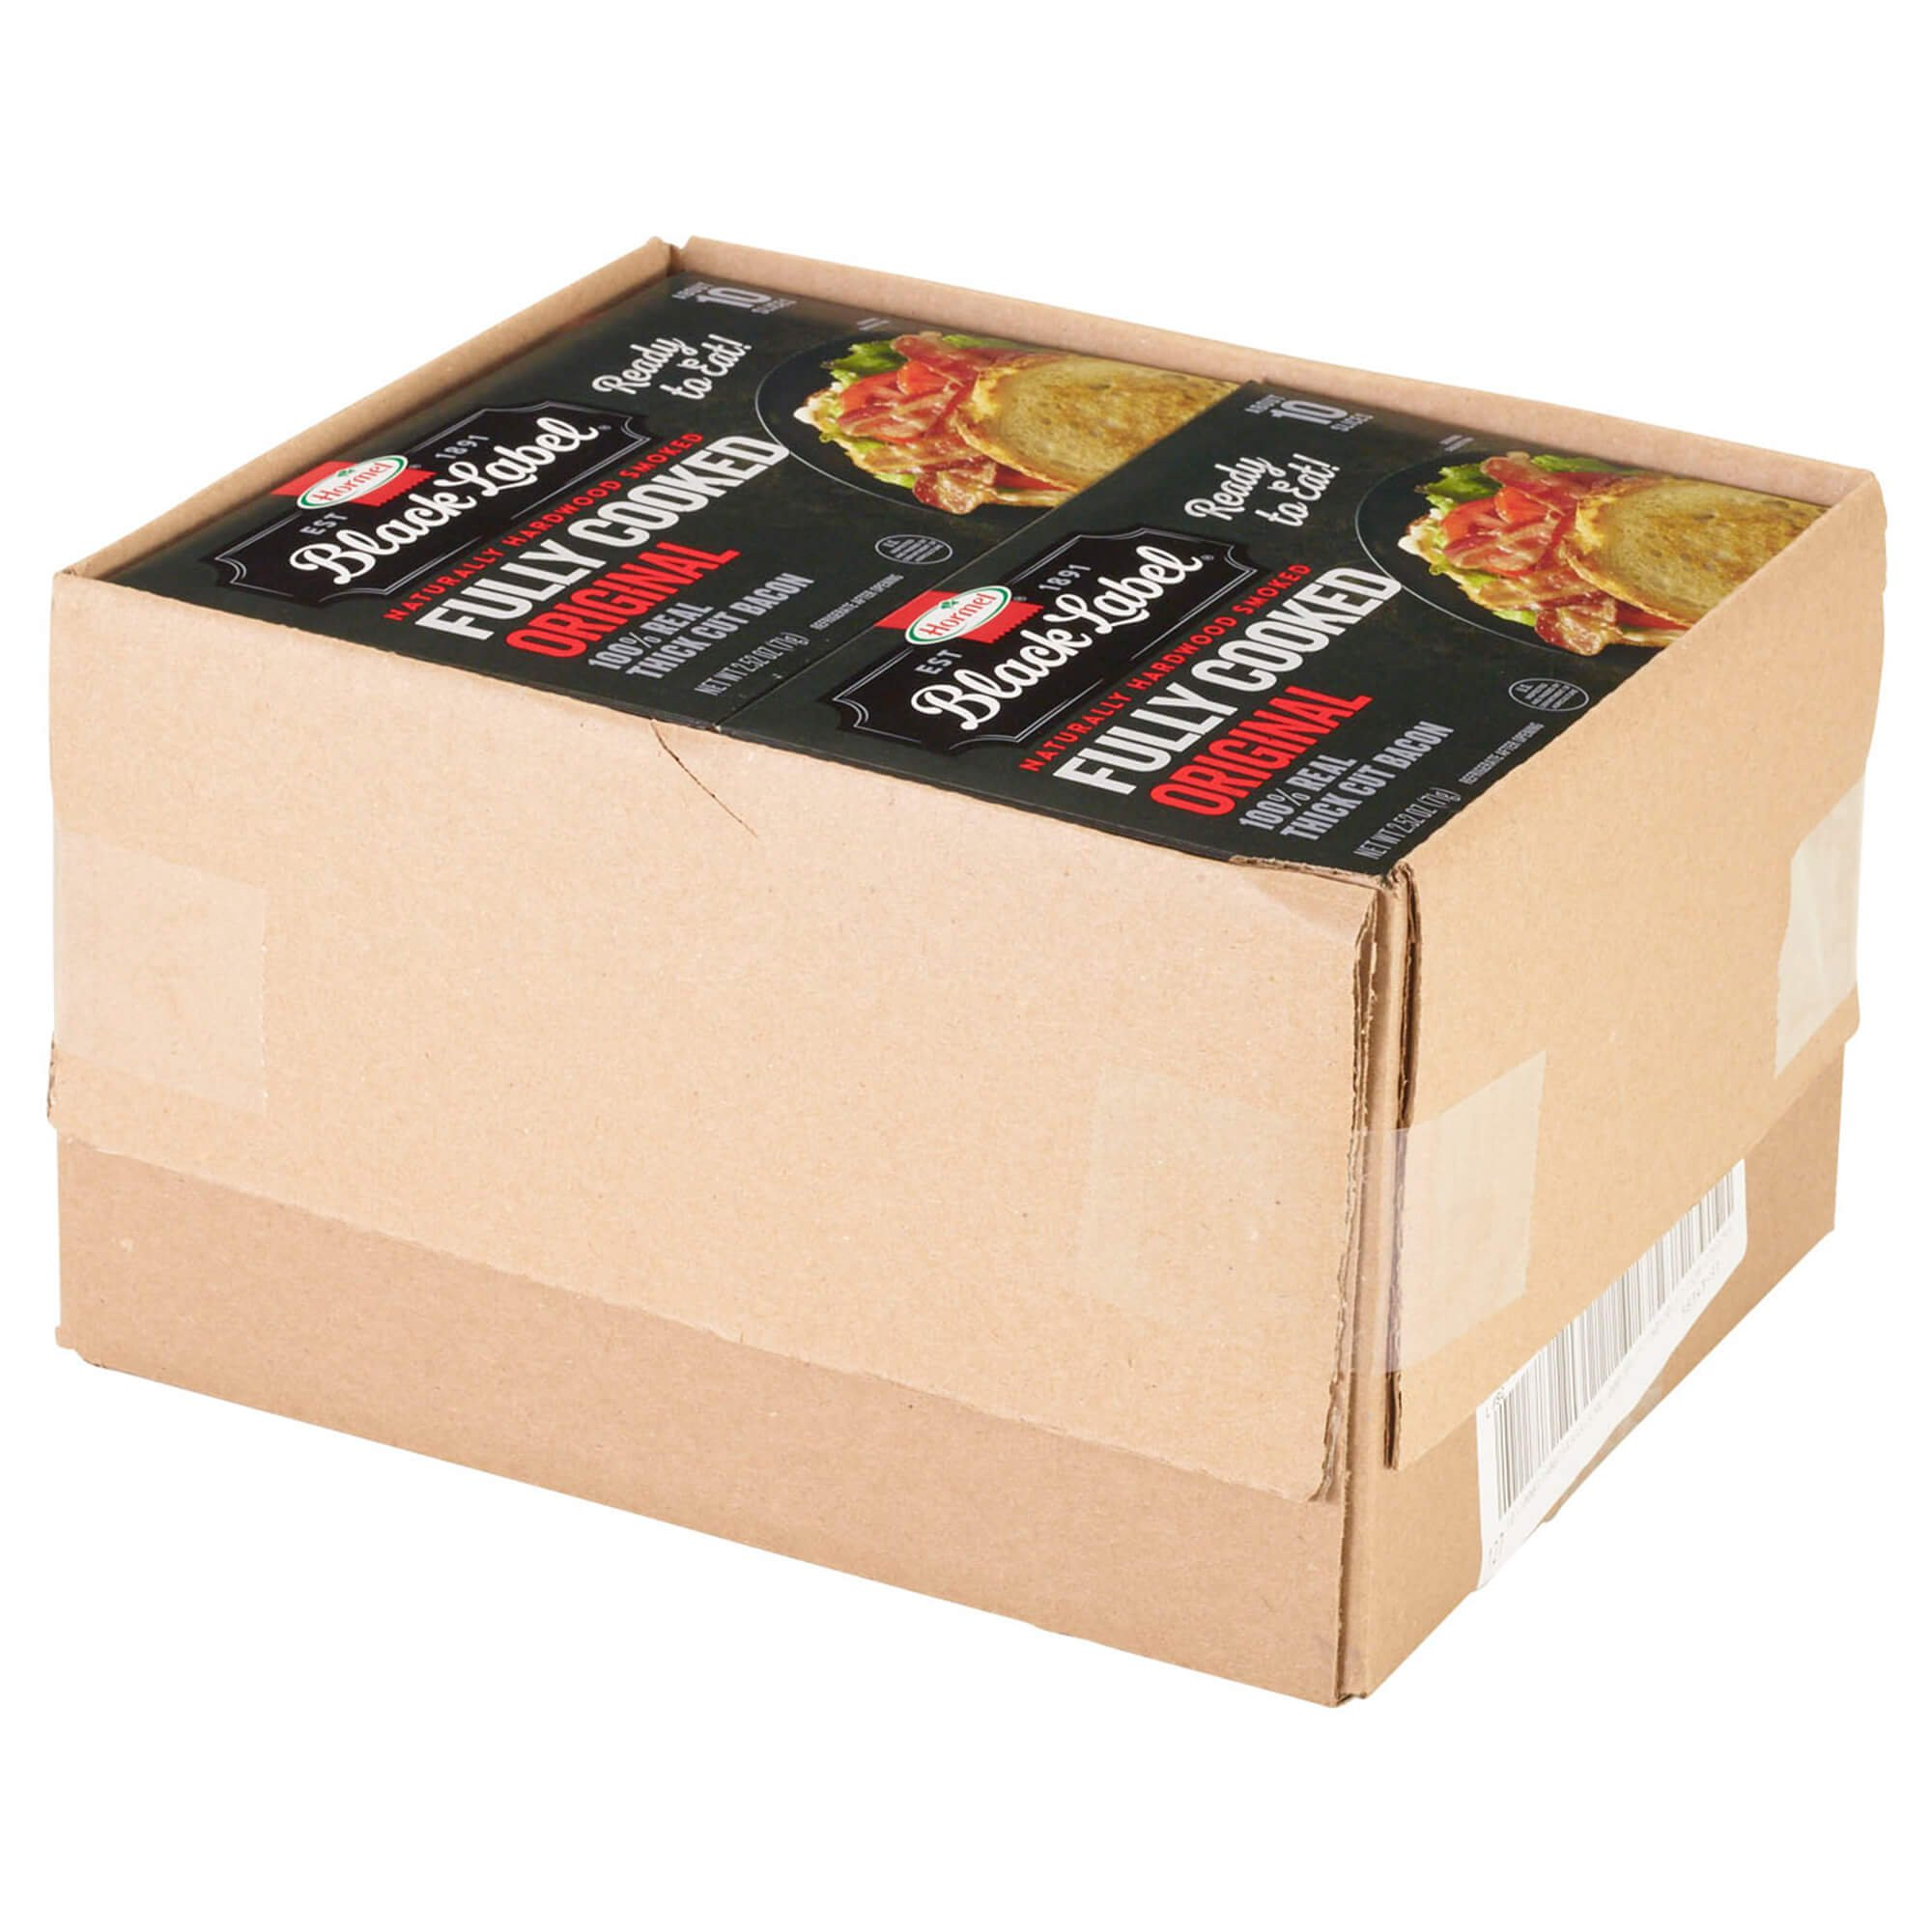 Hormel Black Label Fully Cooked Bacon, 2.52 Oz, Pack of 12